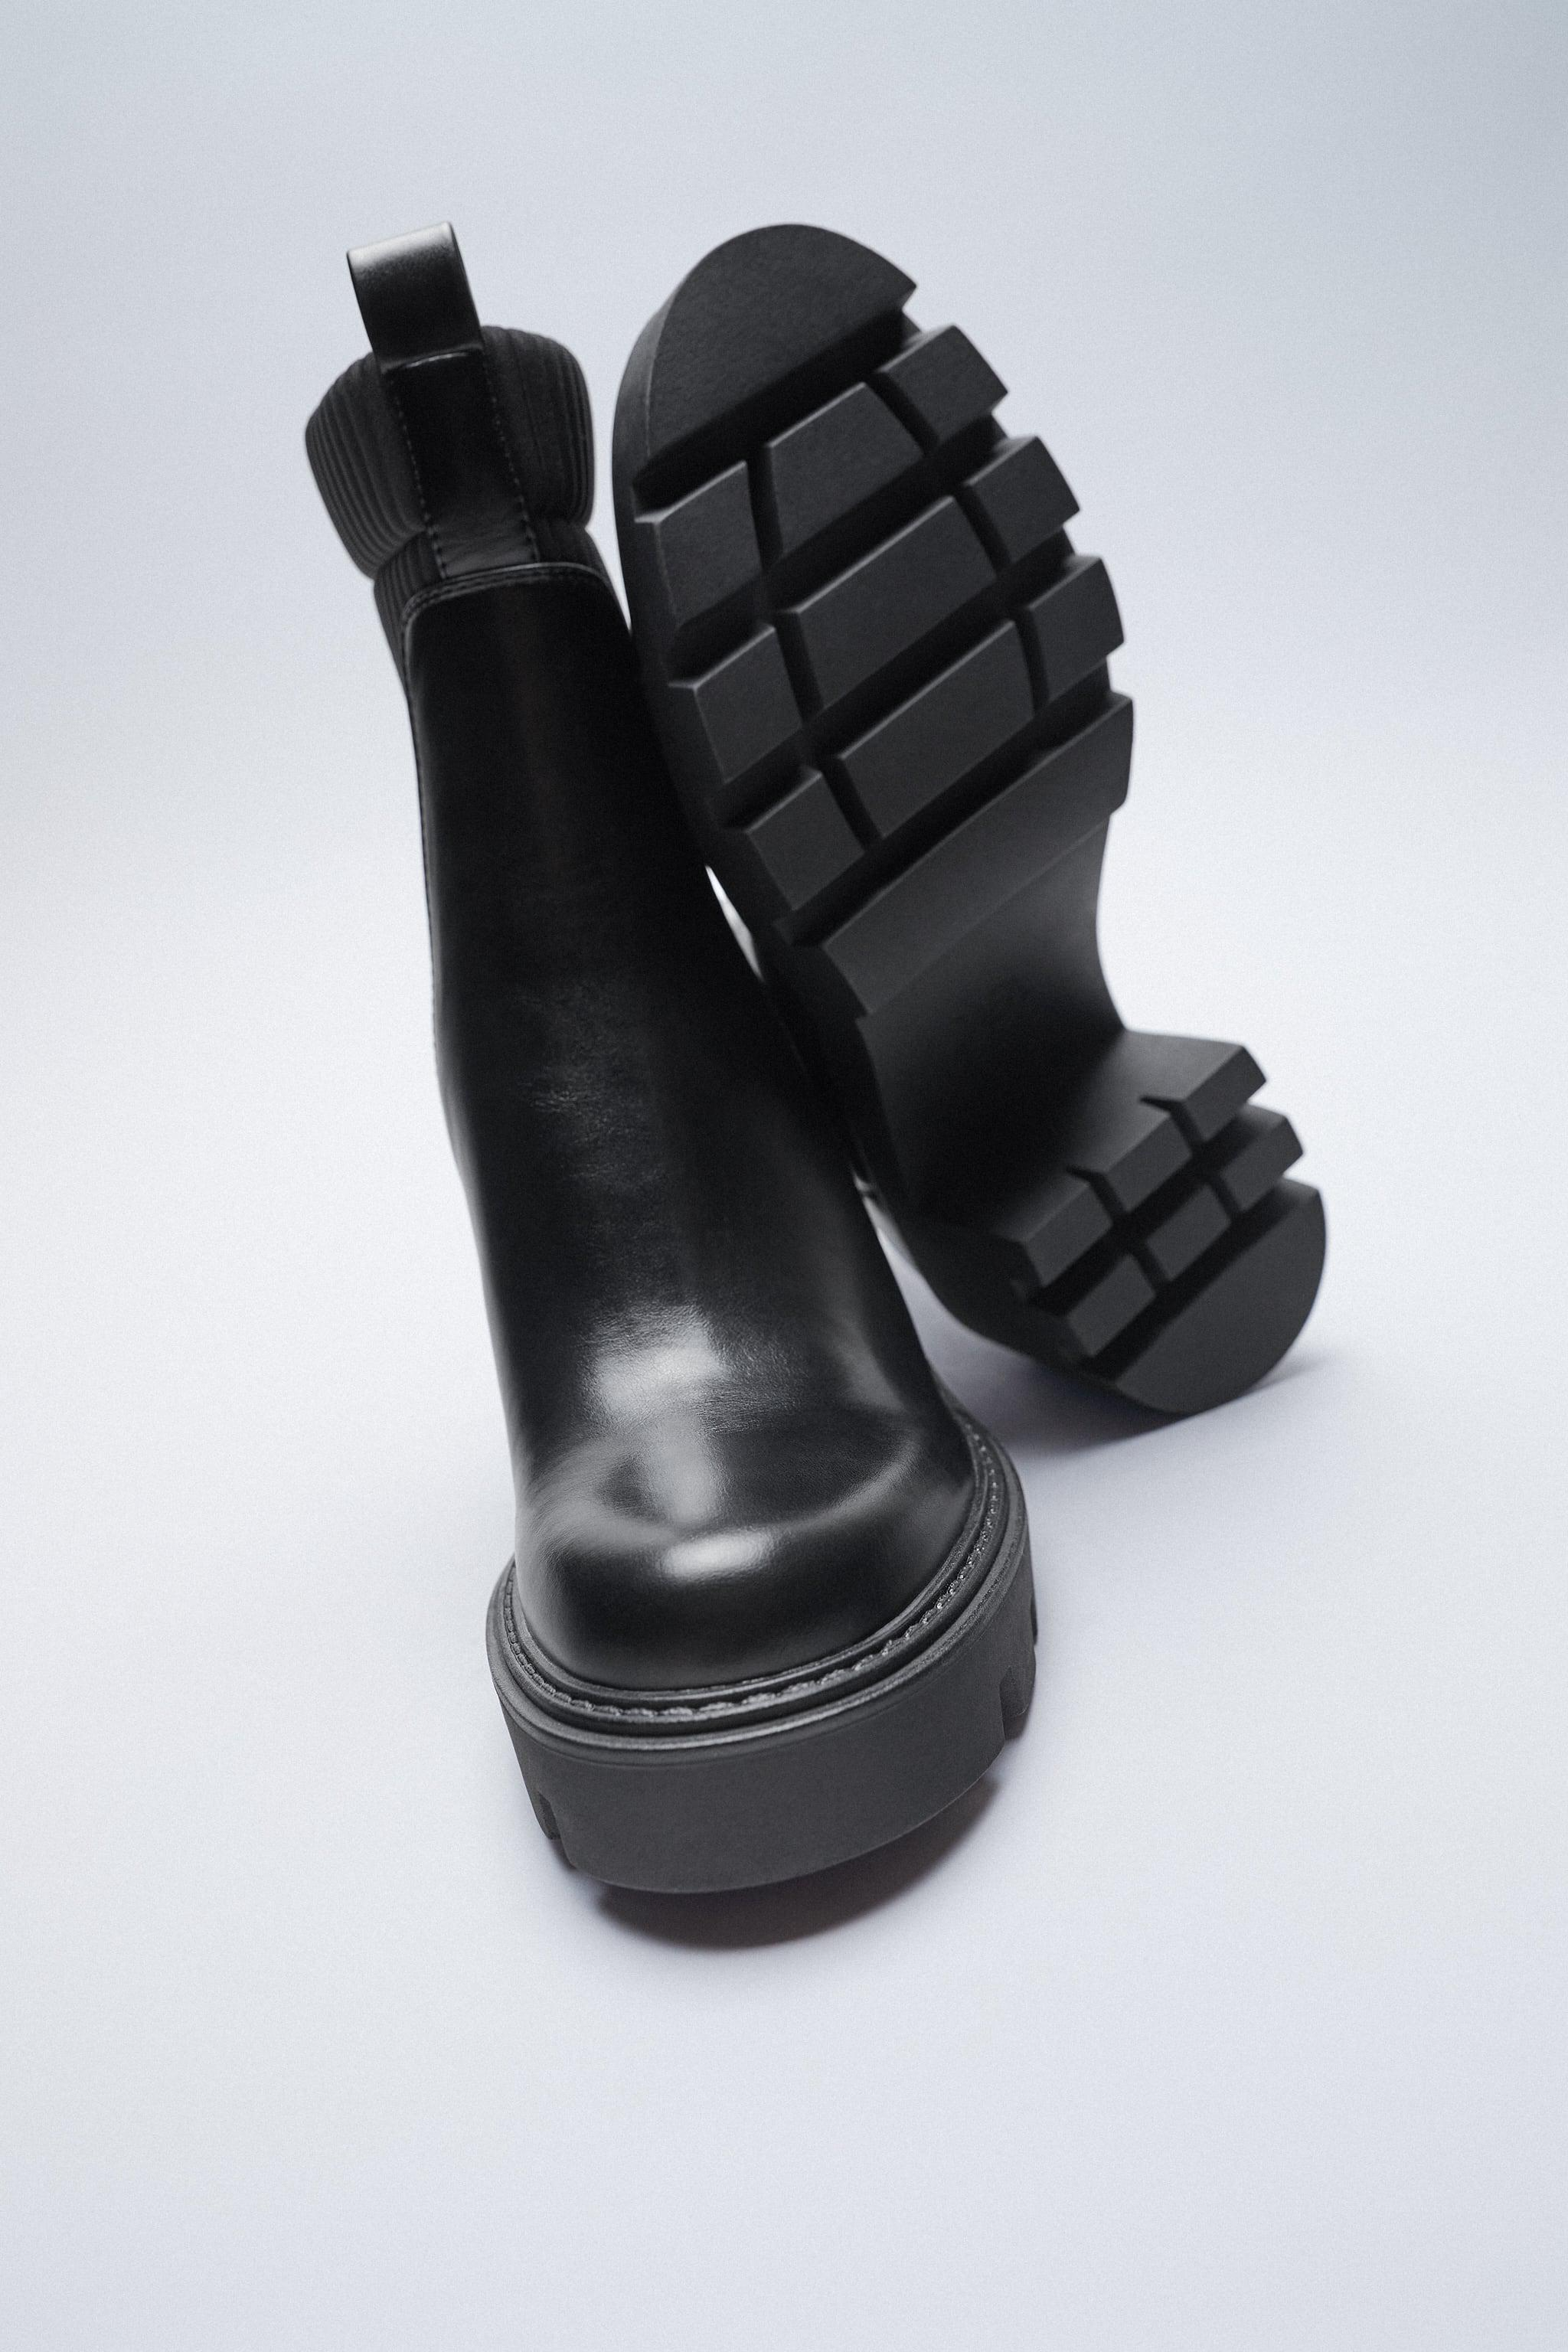 SOCK STYLE HEELED ANKLE BOOTS WITH LUG SOLES 2